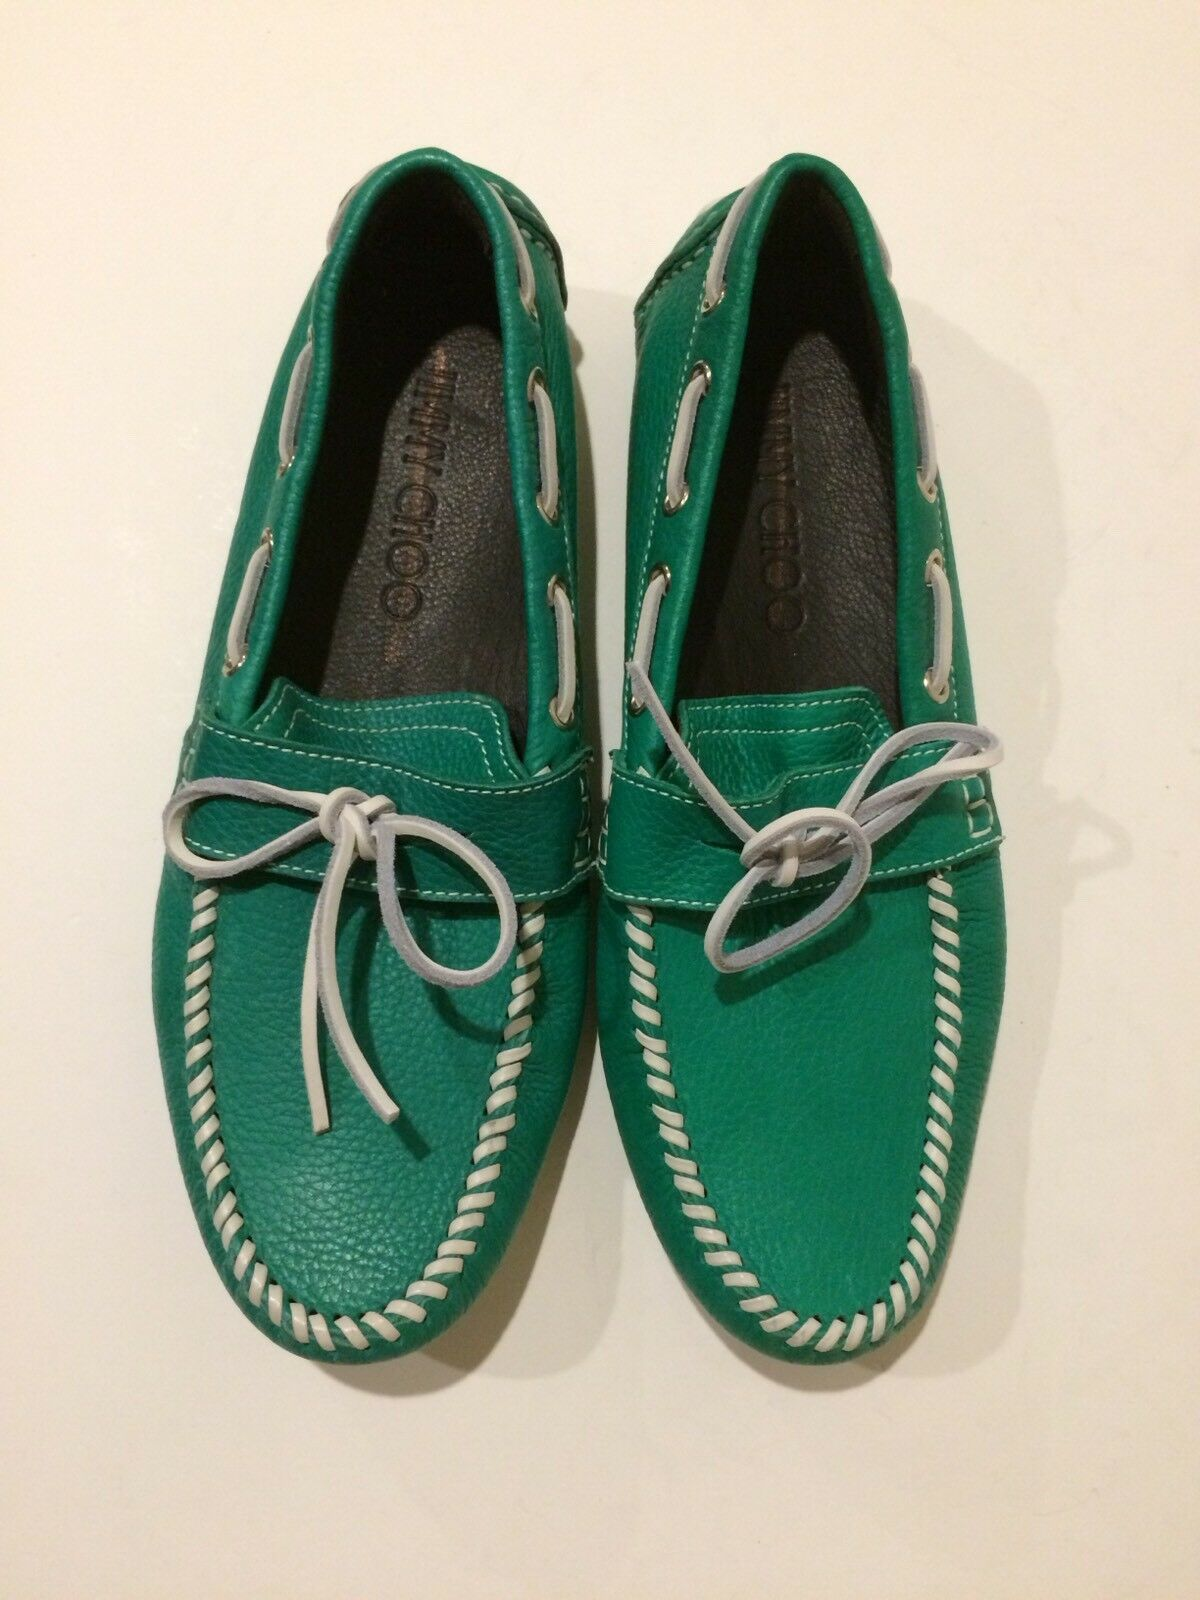 New Jimmy Choo Green Moccasin Leather Loafers (Size: 43EU/10US)